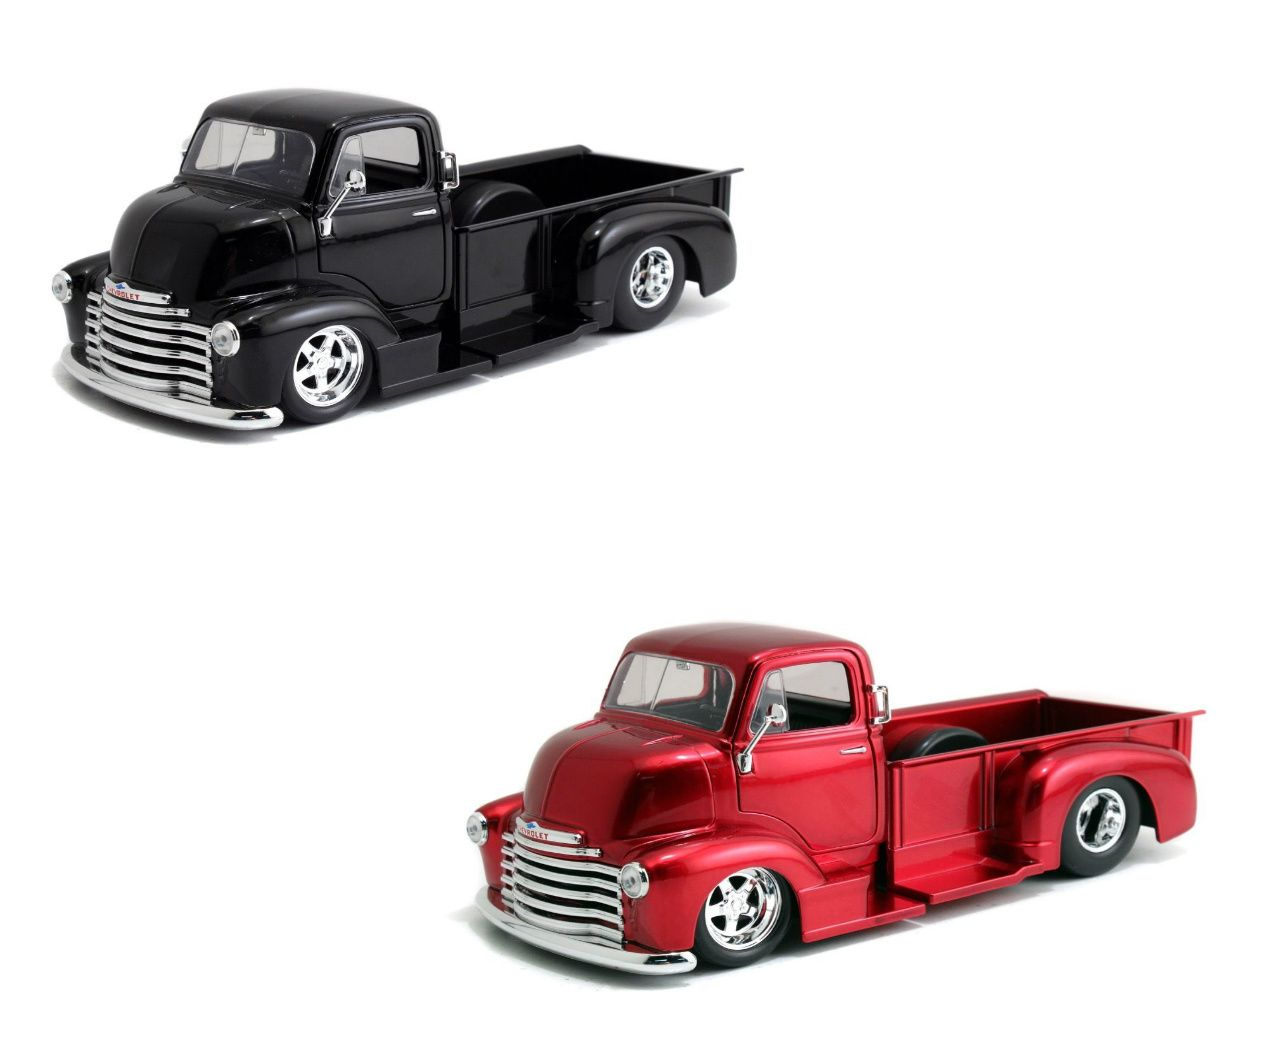 1955 chevy stepside tow truck black jada toys bigtime - Diecast Auto World Jada 1 24 Scale Set Of 2 1952 Chevy Coe Pick